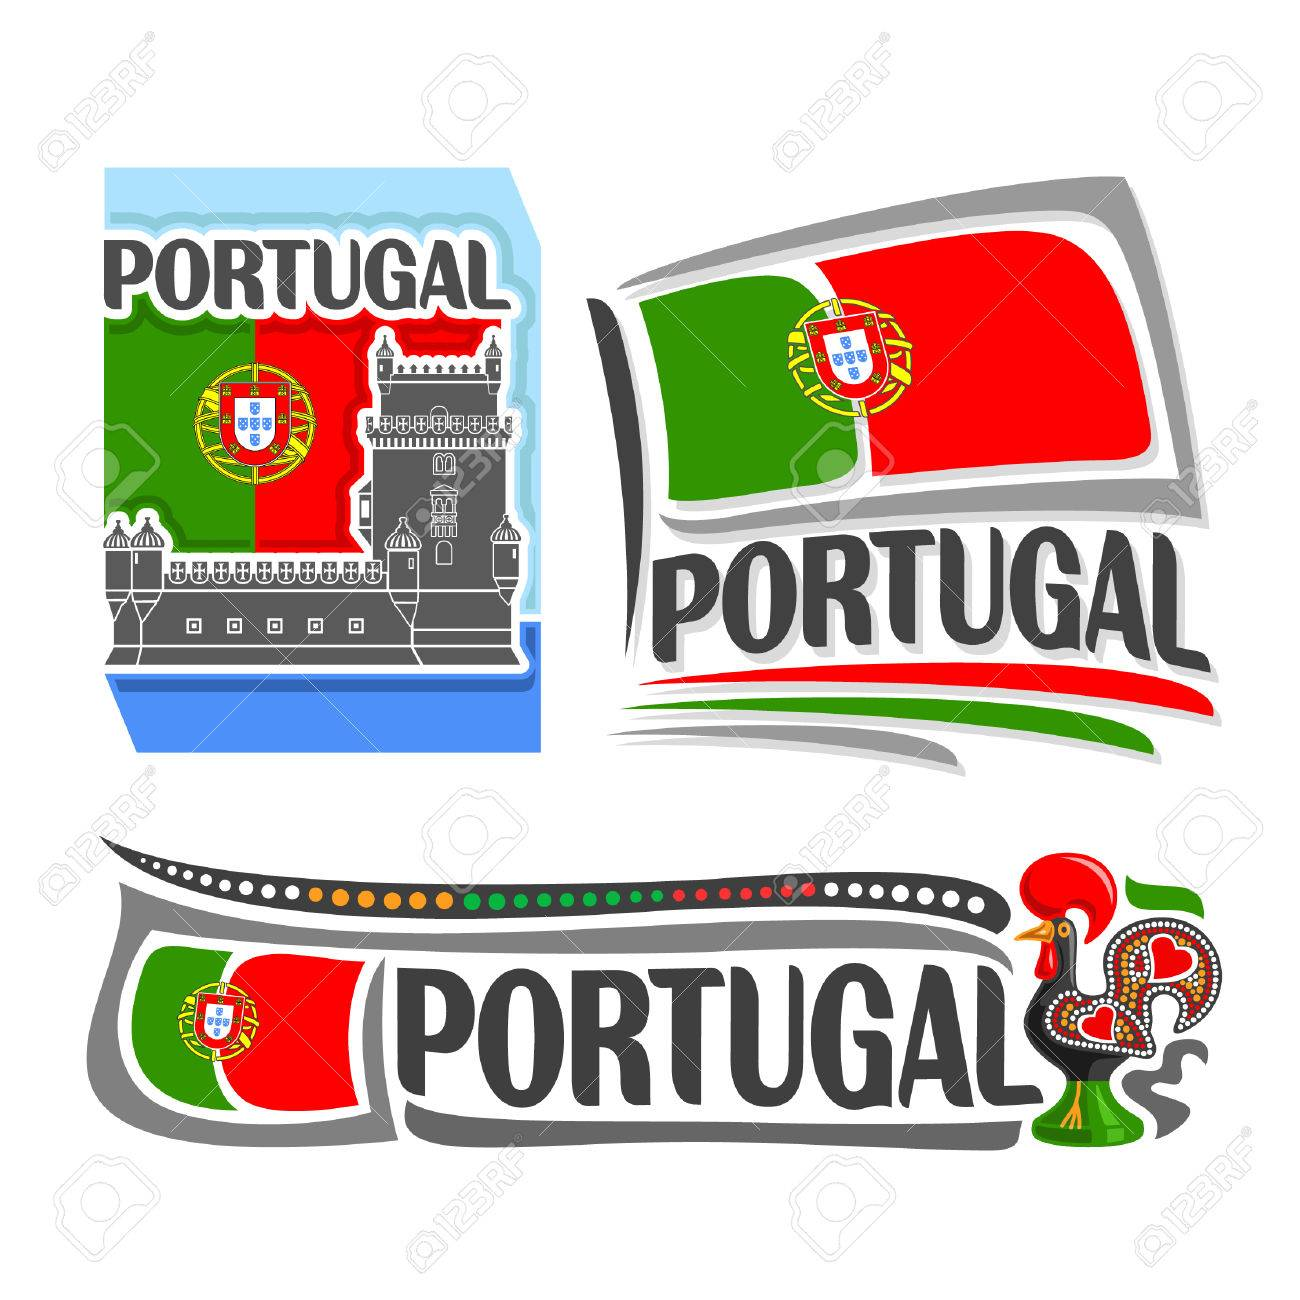 Illustration Of The Icon For Portugal Consisting Of 3 Isolated